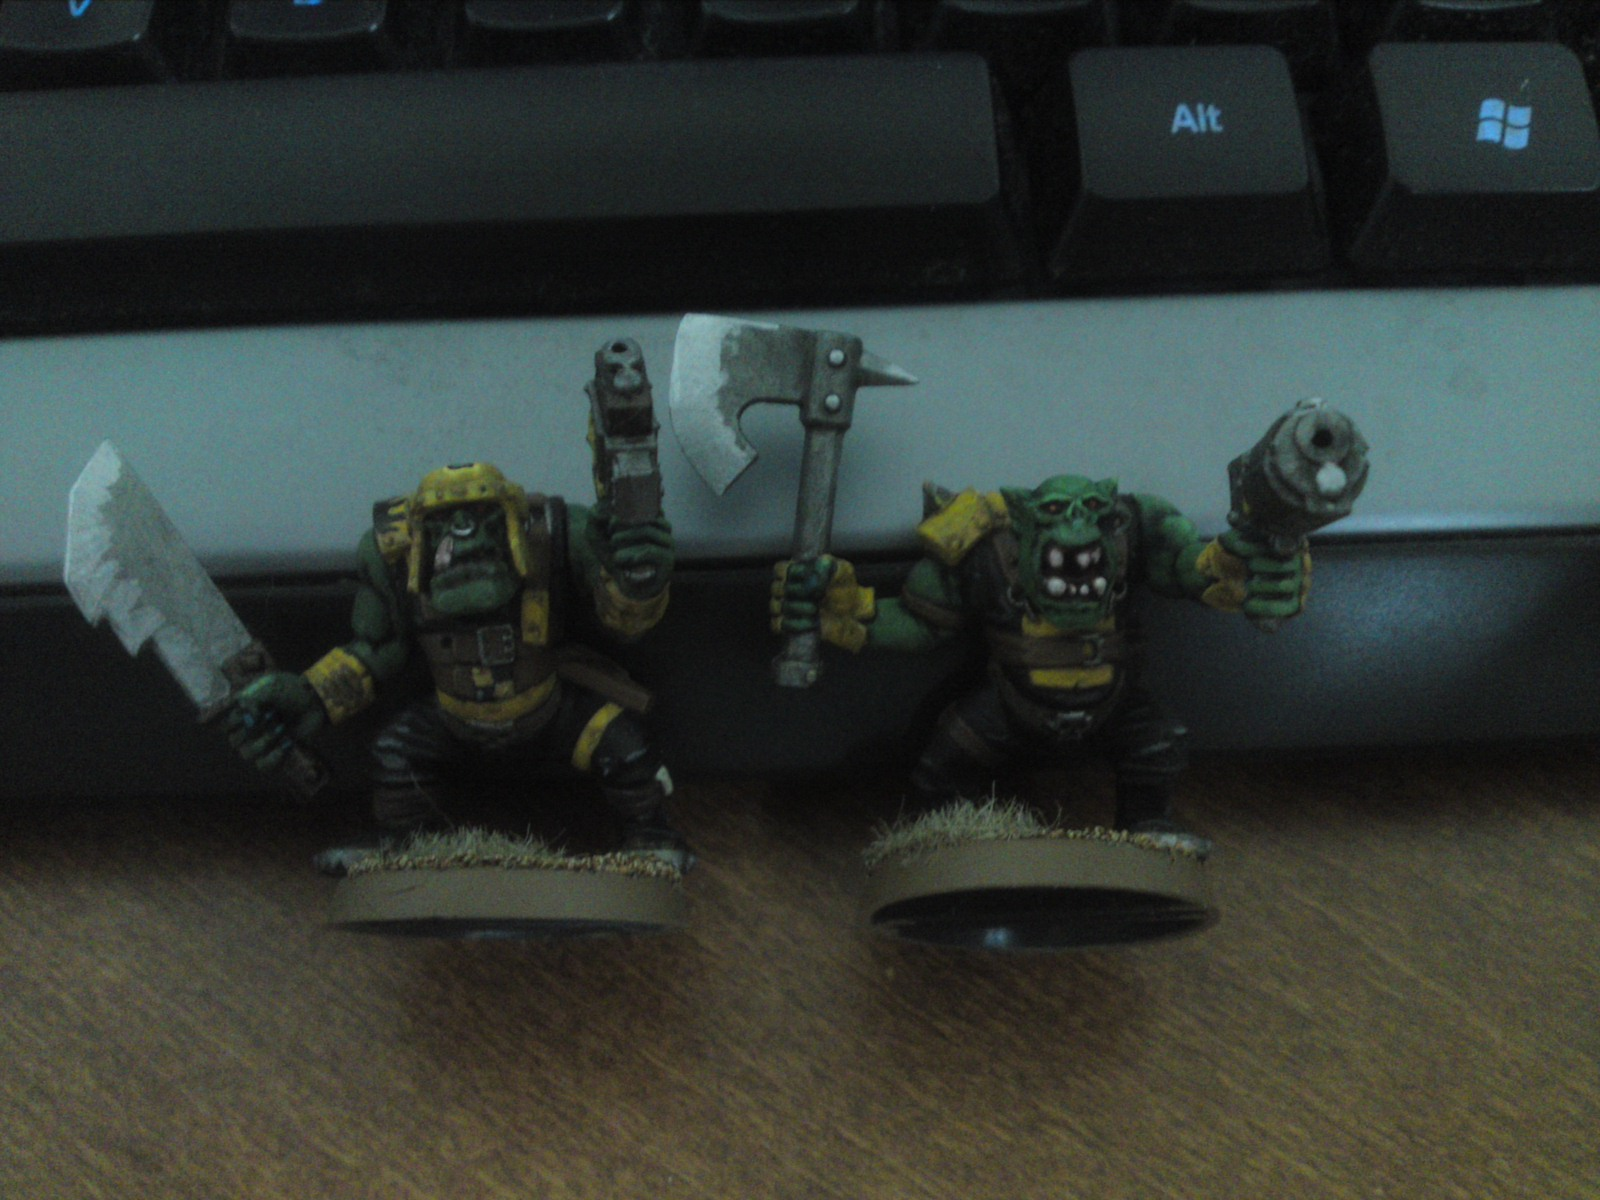 http://foureyed-monster.blogspot.com/2011/10/waaagh-meet-ugg-and-ogg.html